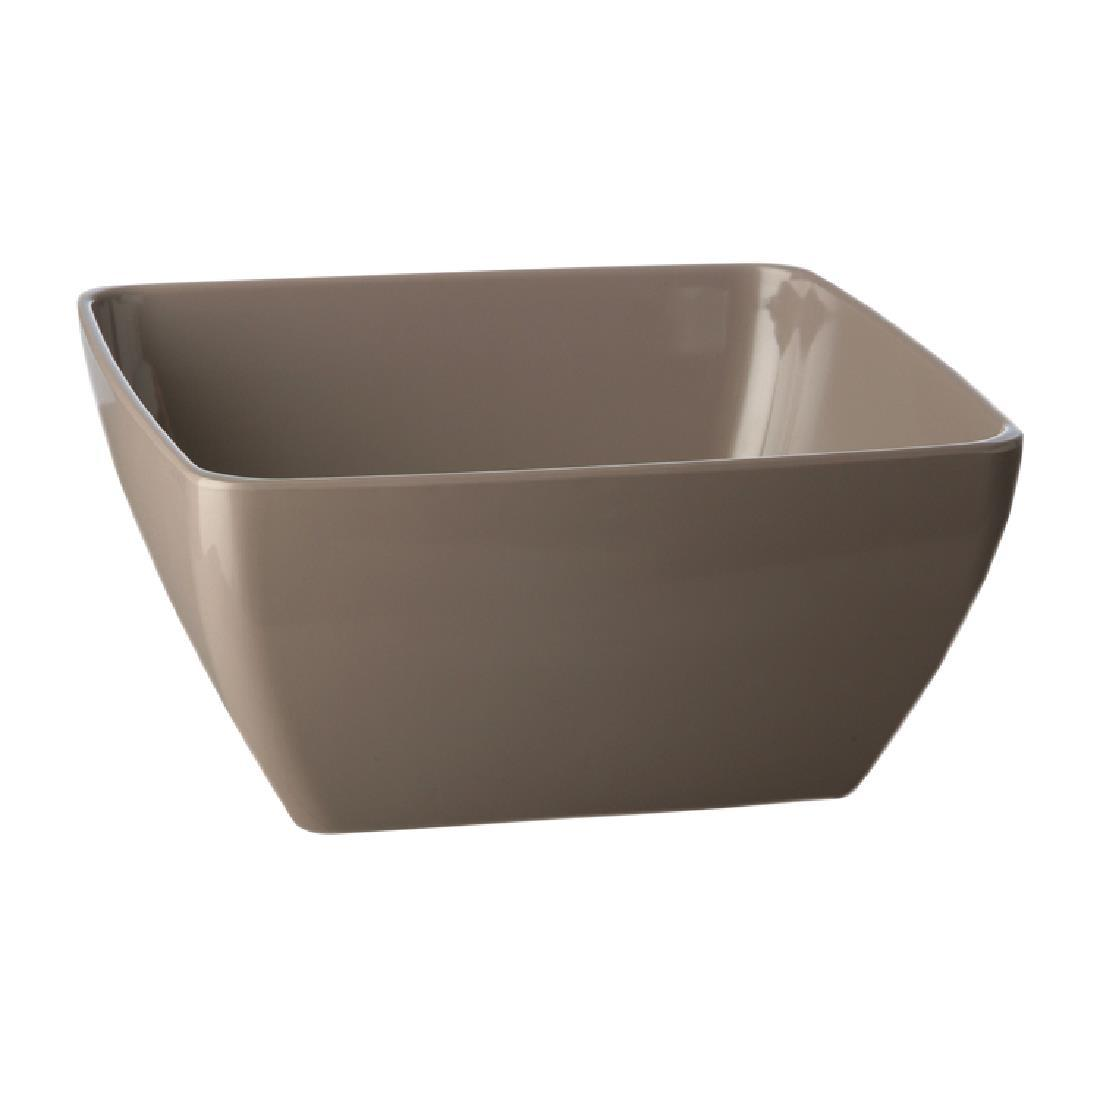 DS016 - APS Pure Bowl Taupe 190mm - Each - DS016